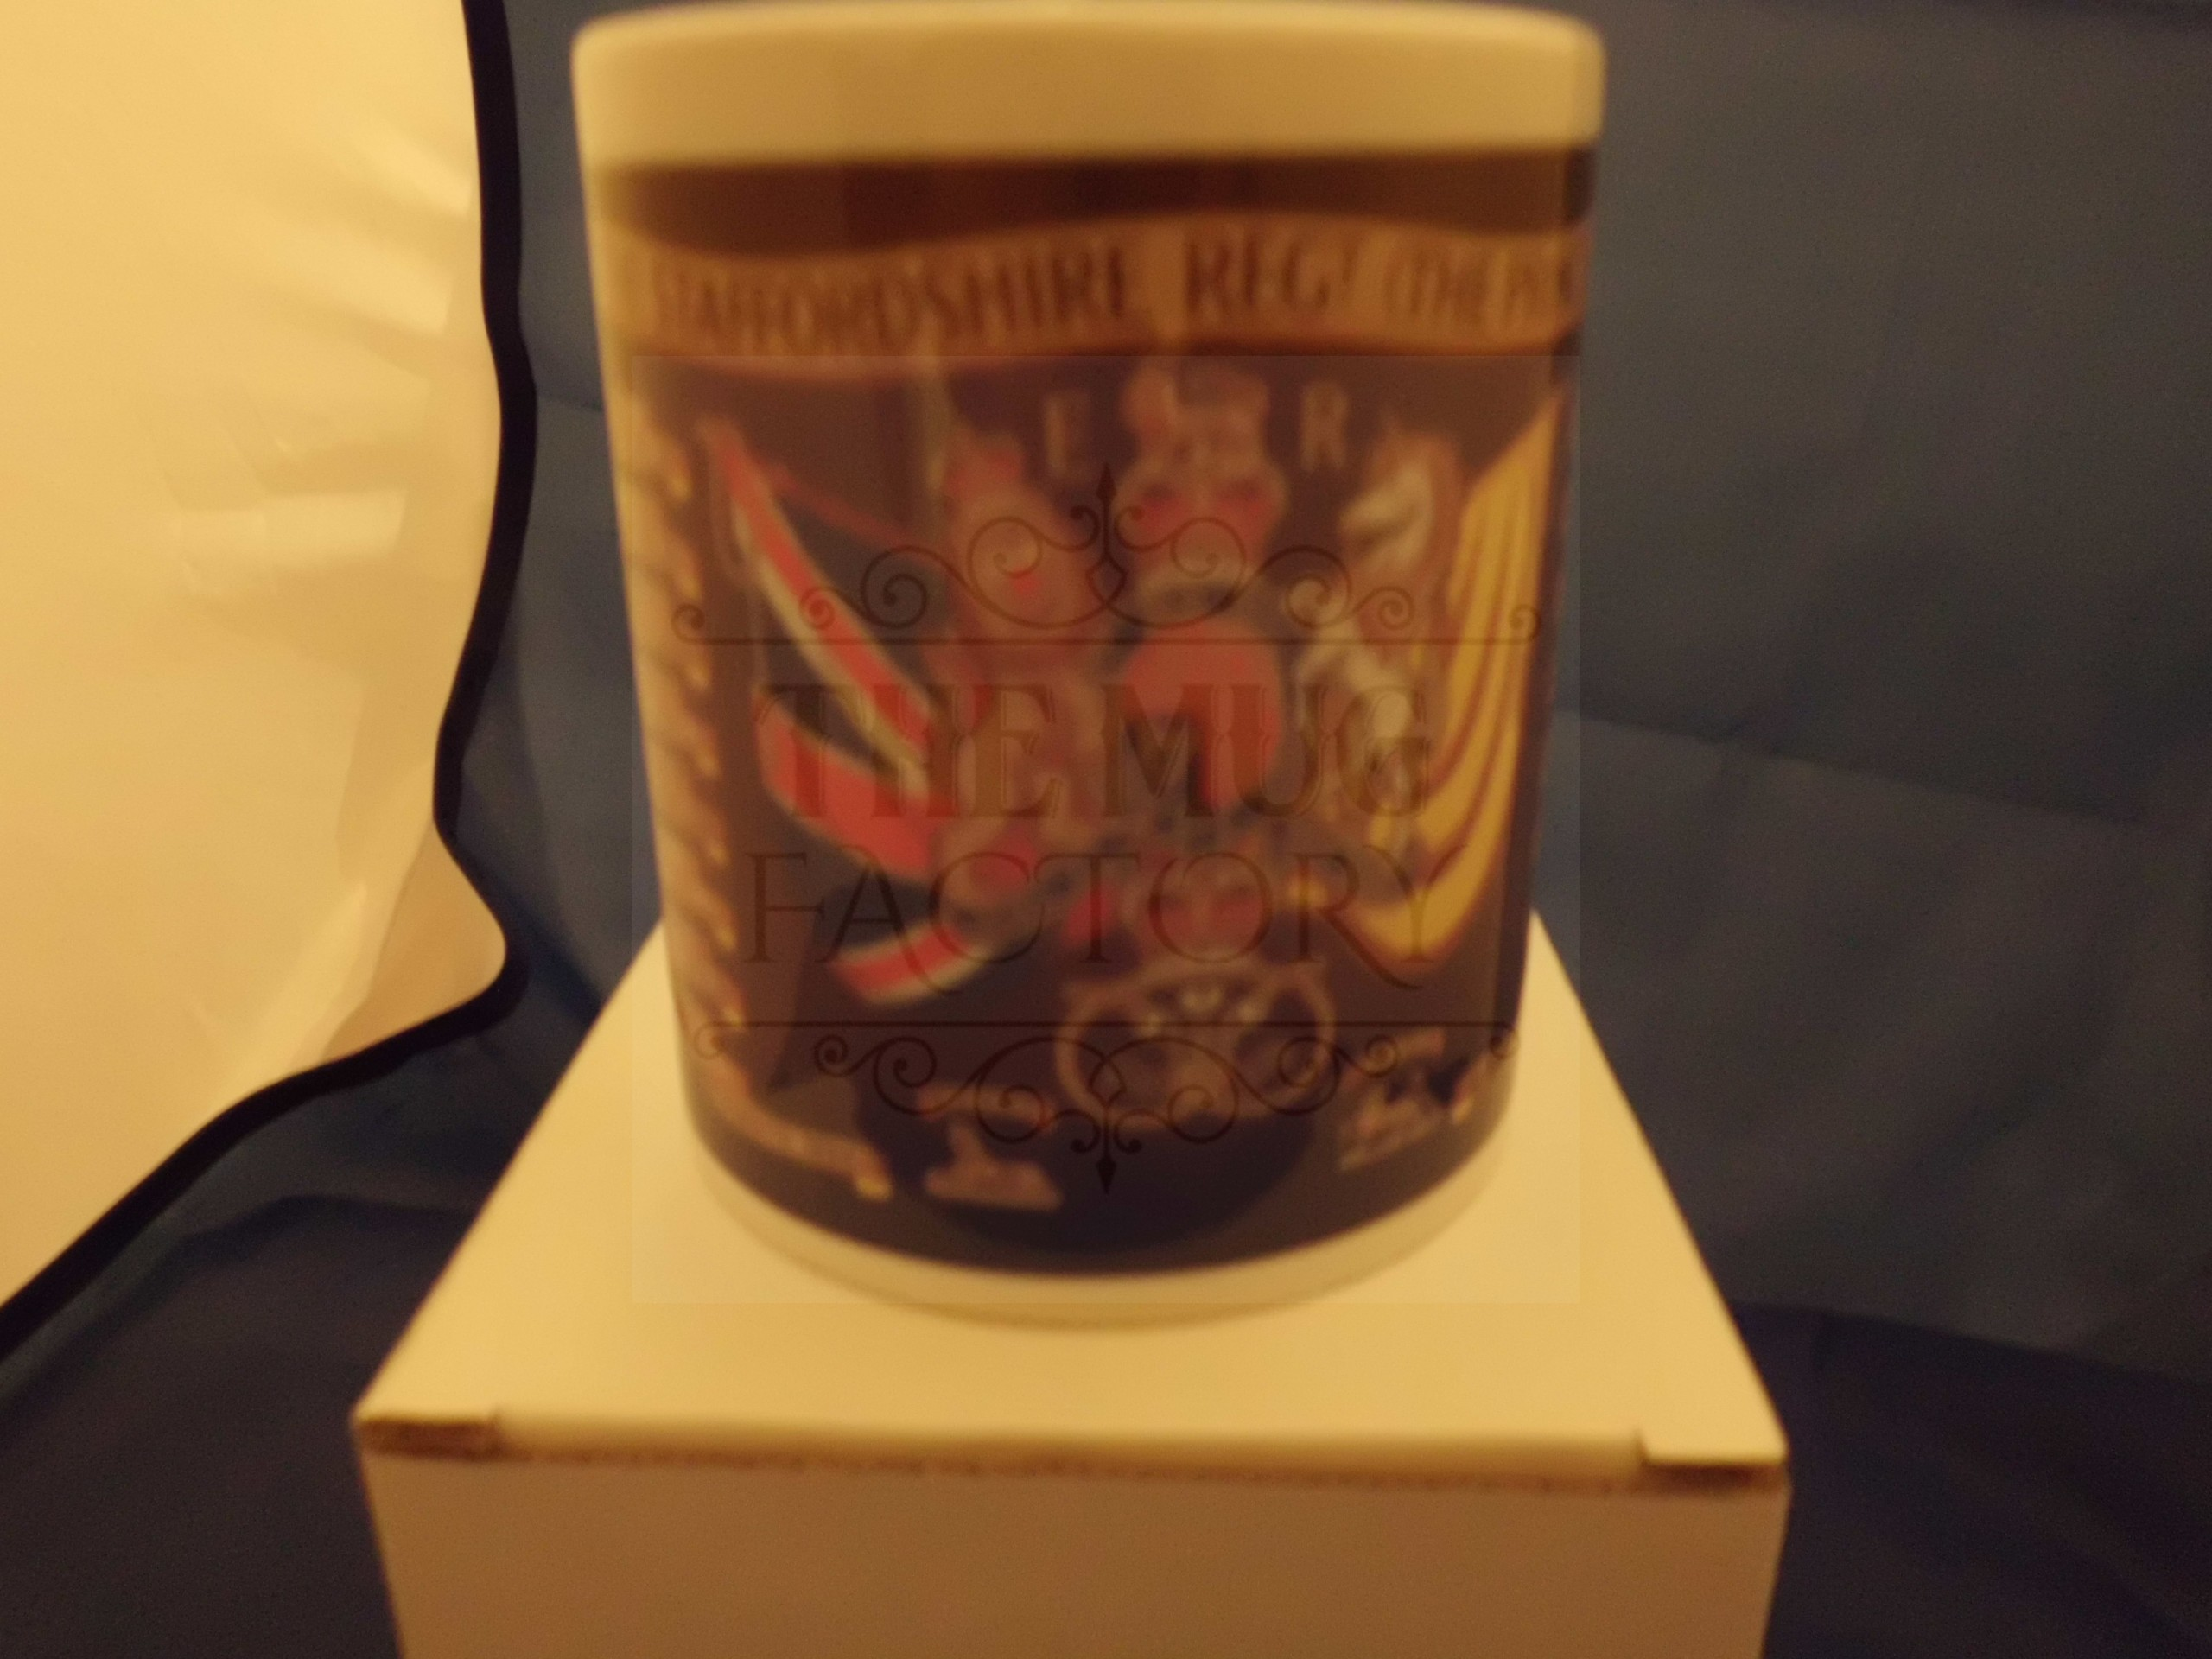 1st Battalion Staffordshire regiment military mug